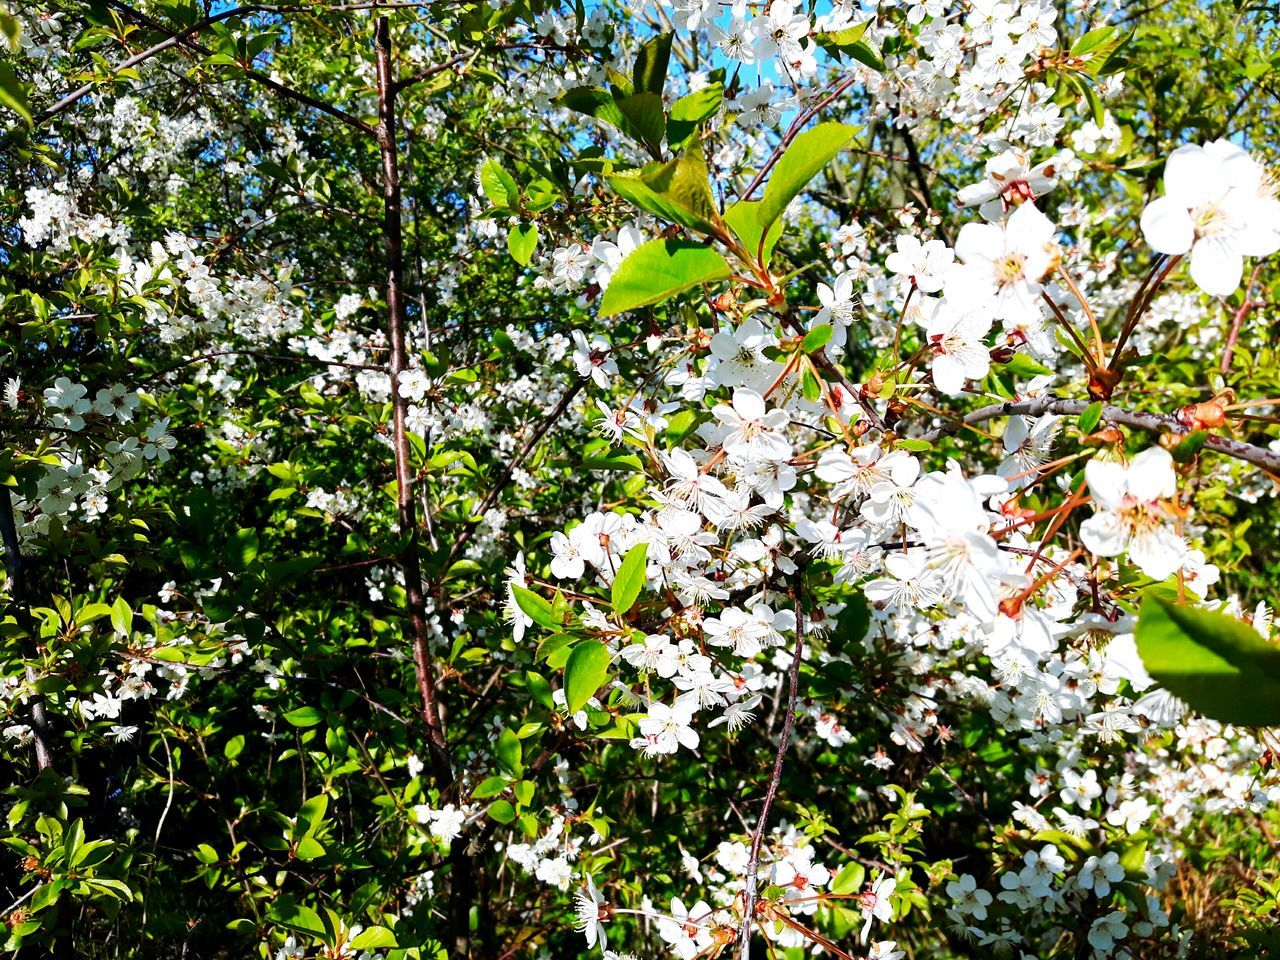 Growth Flower Nature Beauty In Nature Tree Blossom Branch Low Angle View Fragility Day Outdoors No People Springtime Freshness Close-up Kwiaty Bez Trees And Sky Drzewa